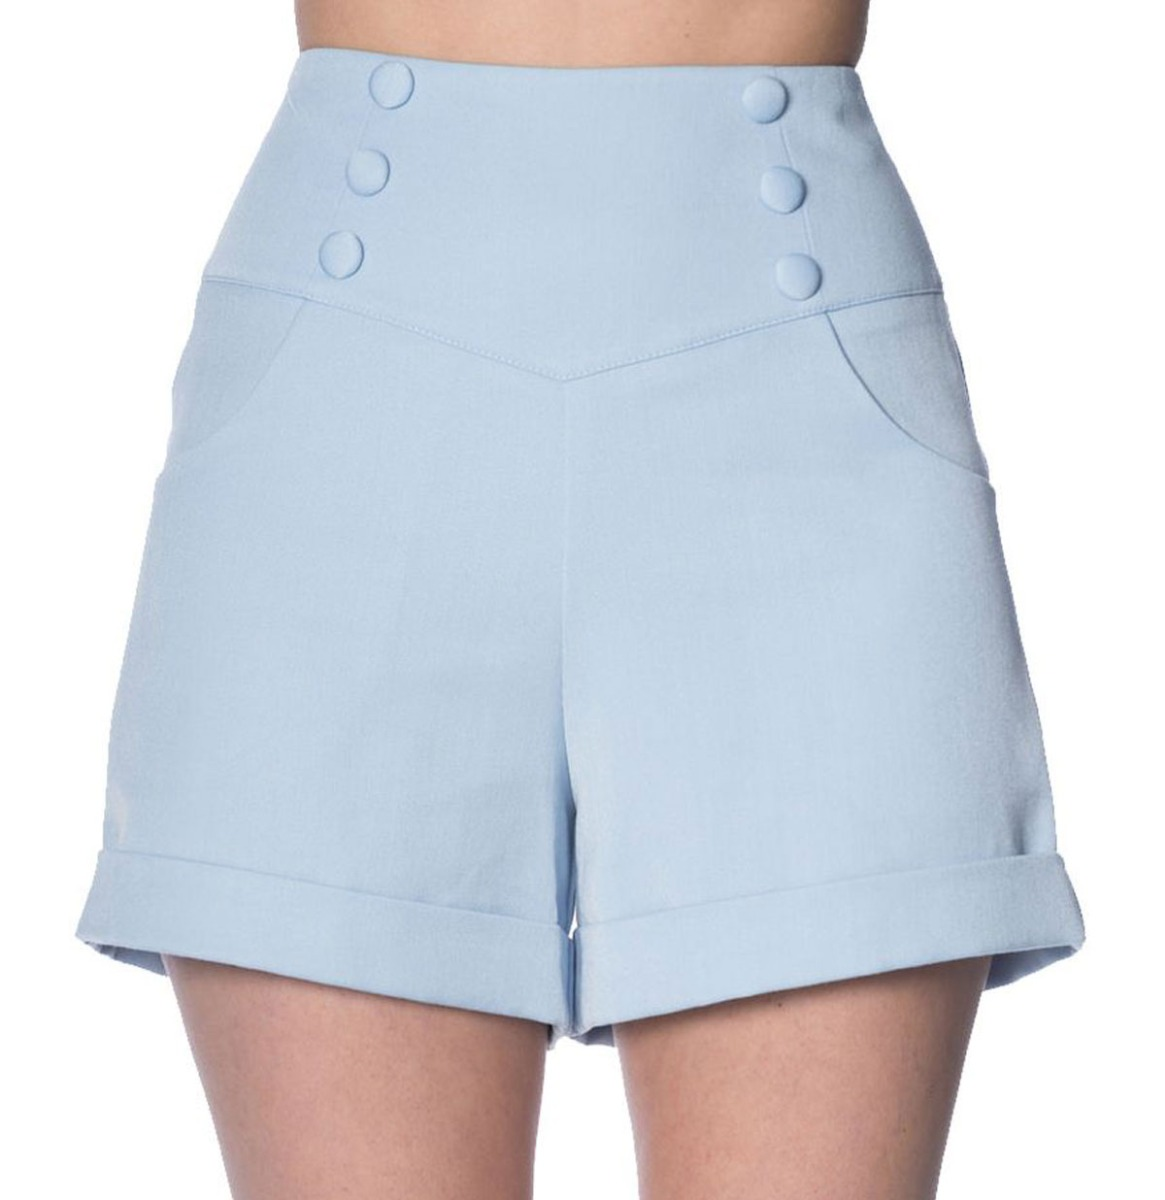 Fiftiesstore Banned Cute As A Button Shorts Baby Blauw